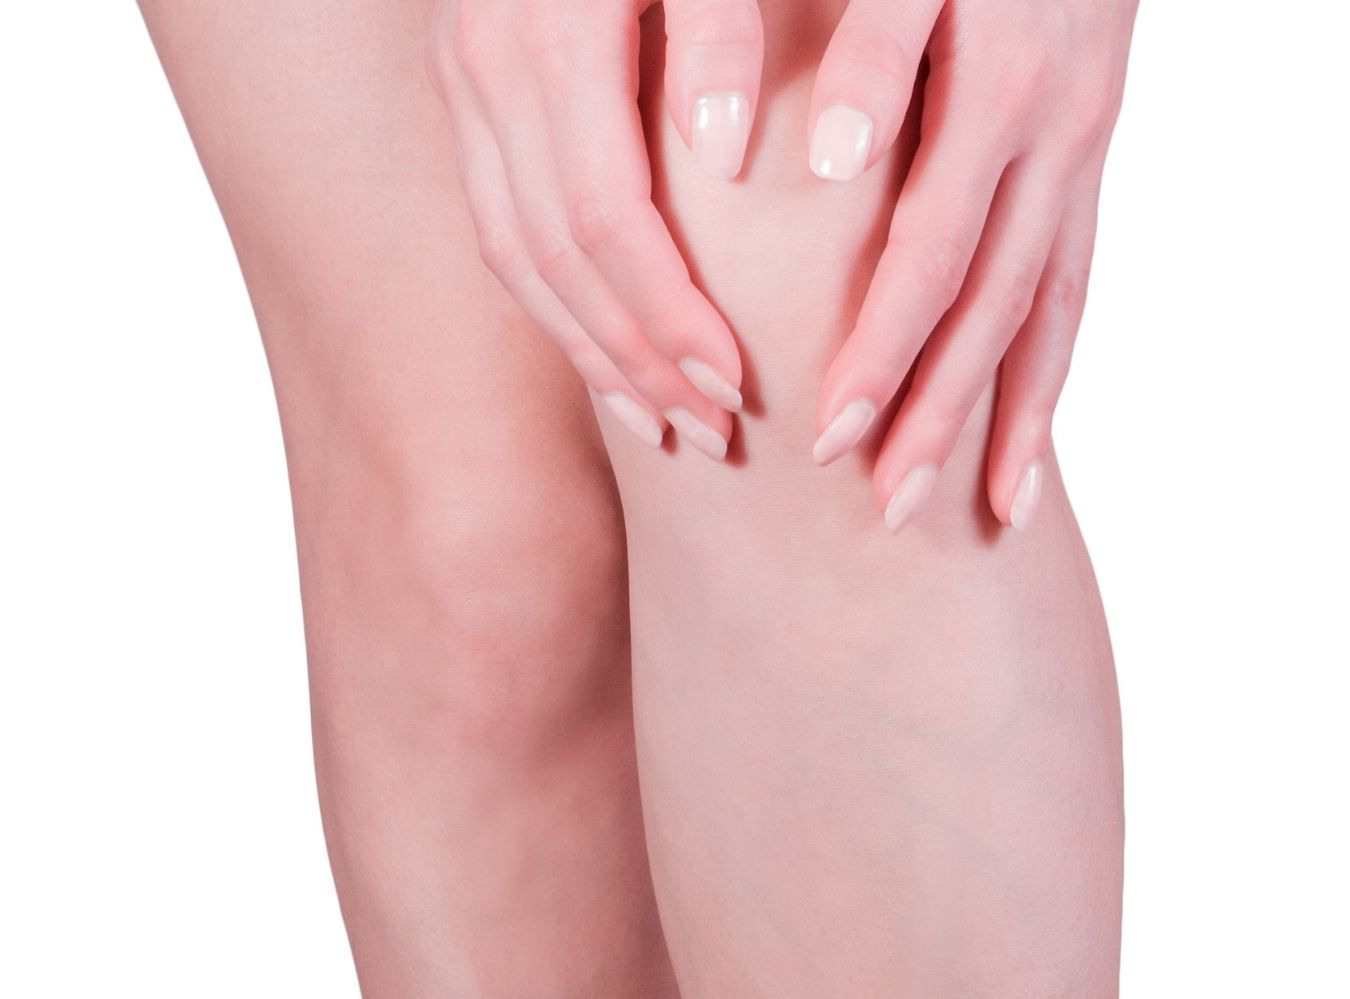 6 Natural Recipes To Lighten Your Knees